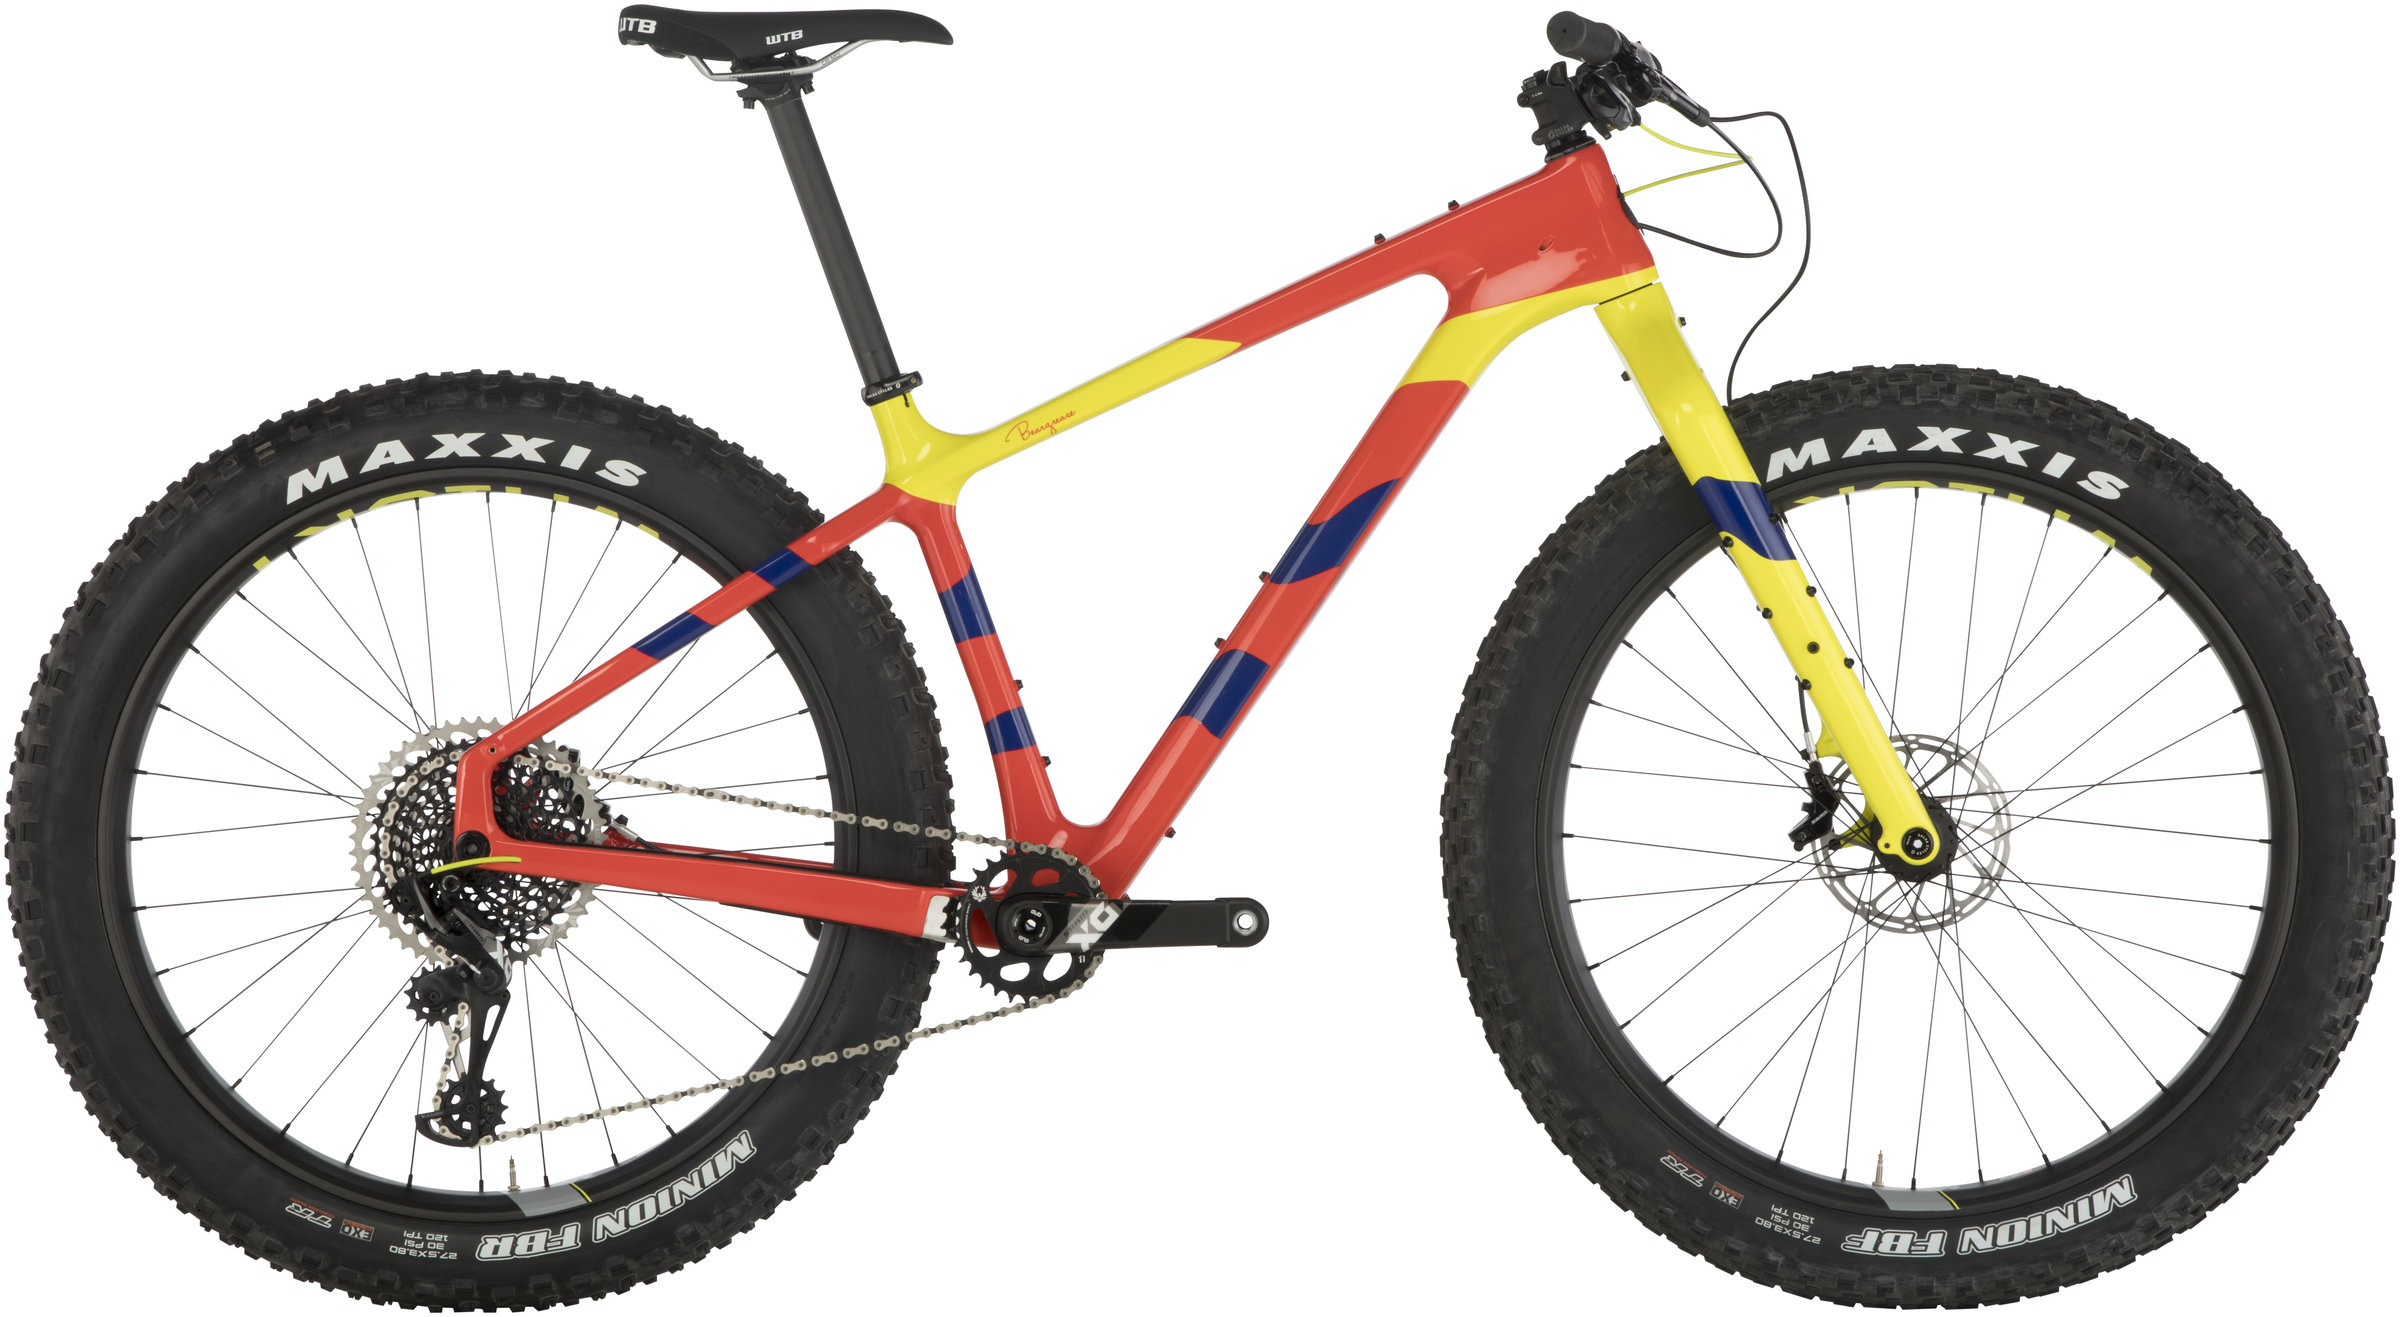 Salsa Beargrease Carbon X01 Eagle Bicycle Playground